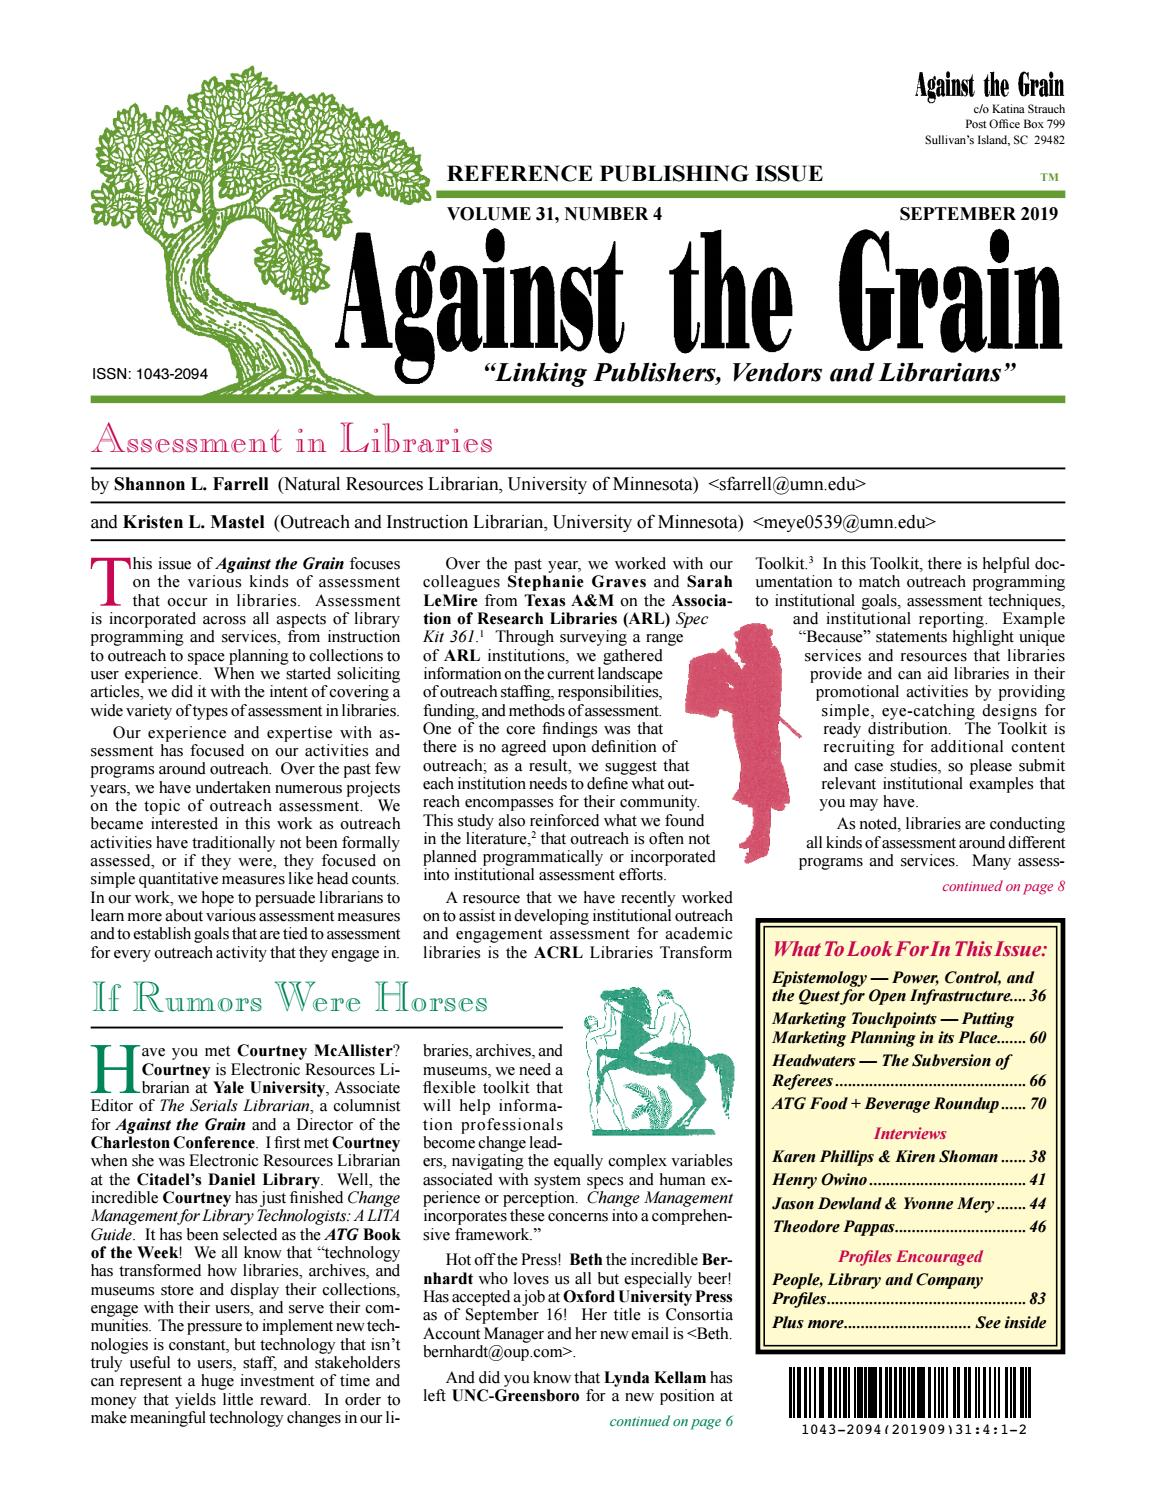 Vcu Academic Calendar Spring 2020.Against The Grain V31 4 September 2019 By Against The